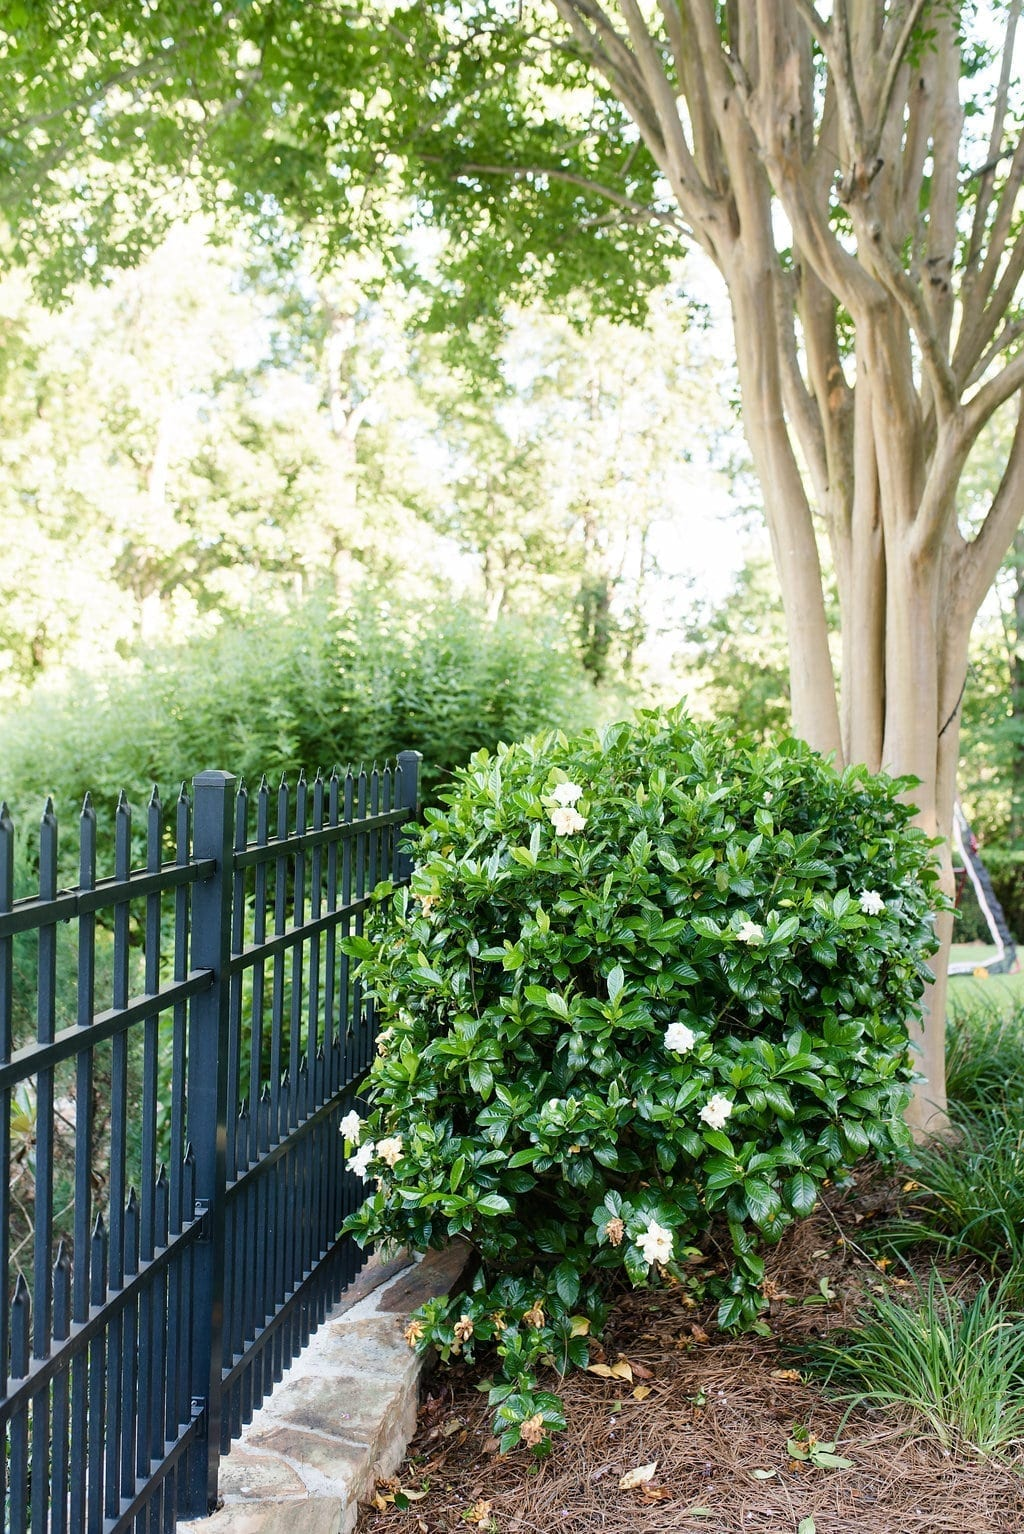 Gardenia Bushes size and how large mine are in our Atlanta, Georgia yard and are perfect small trees for privacy.